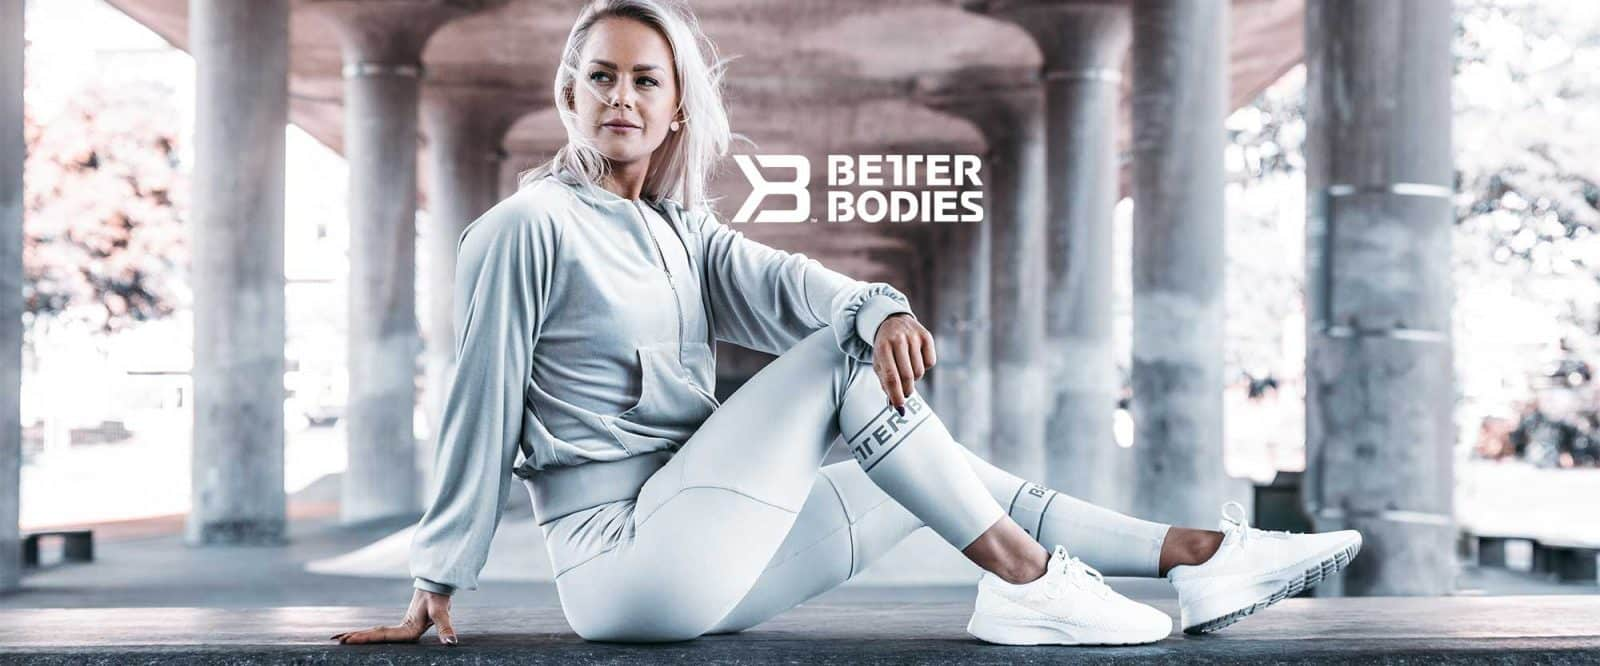 BetterBodies women gym apparel